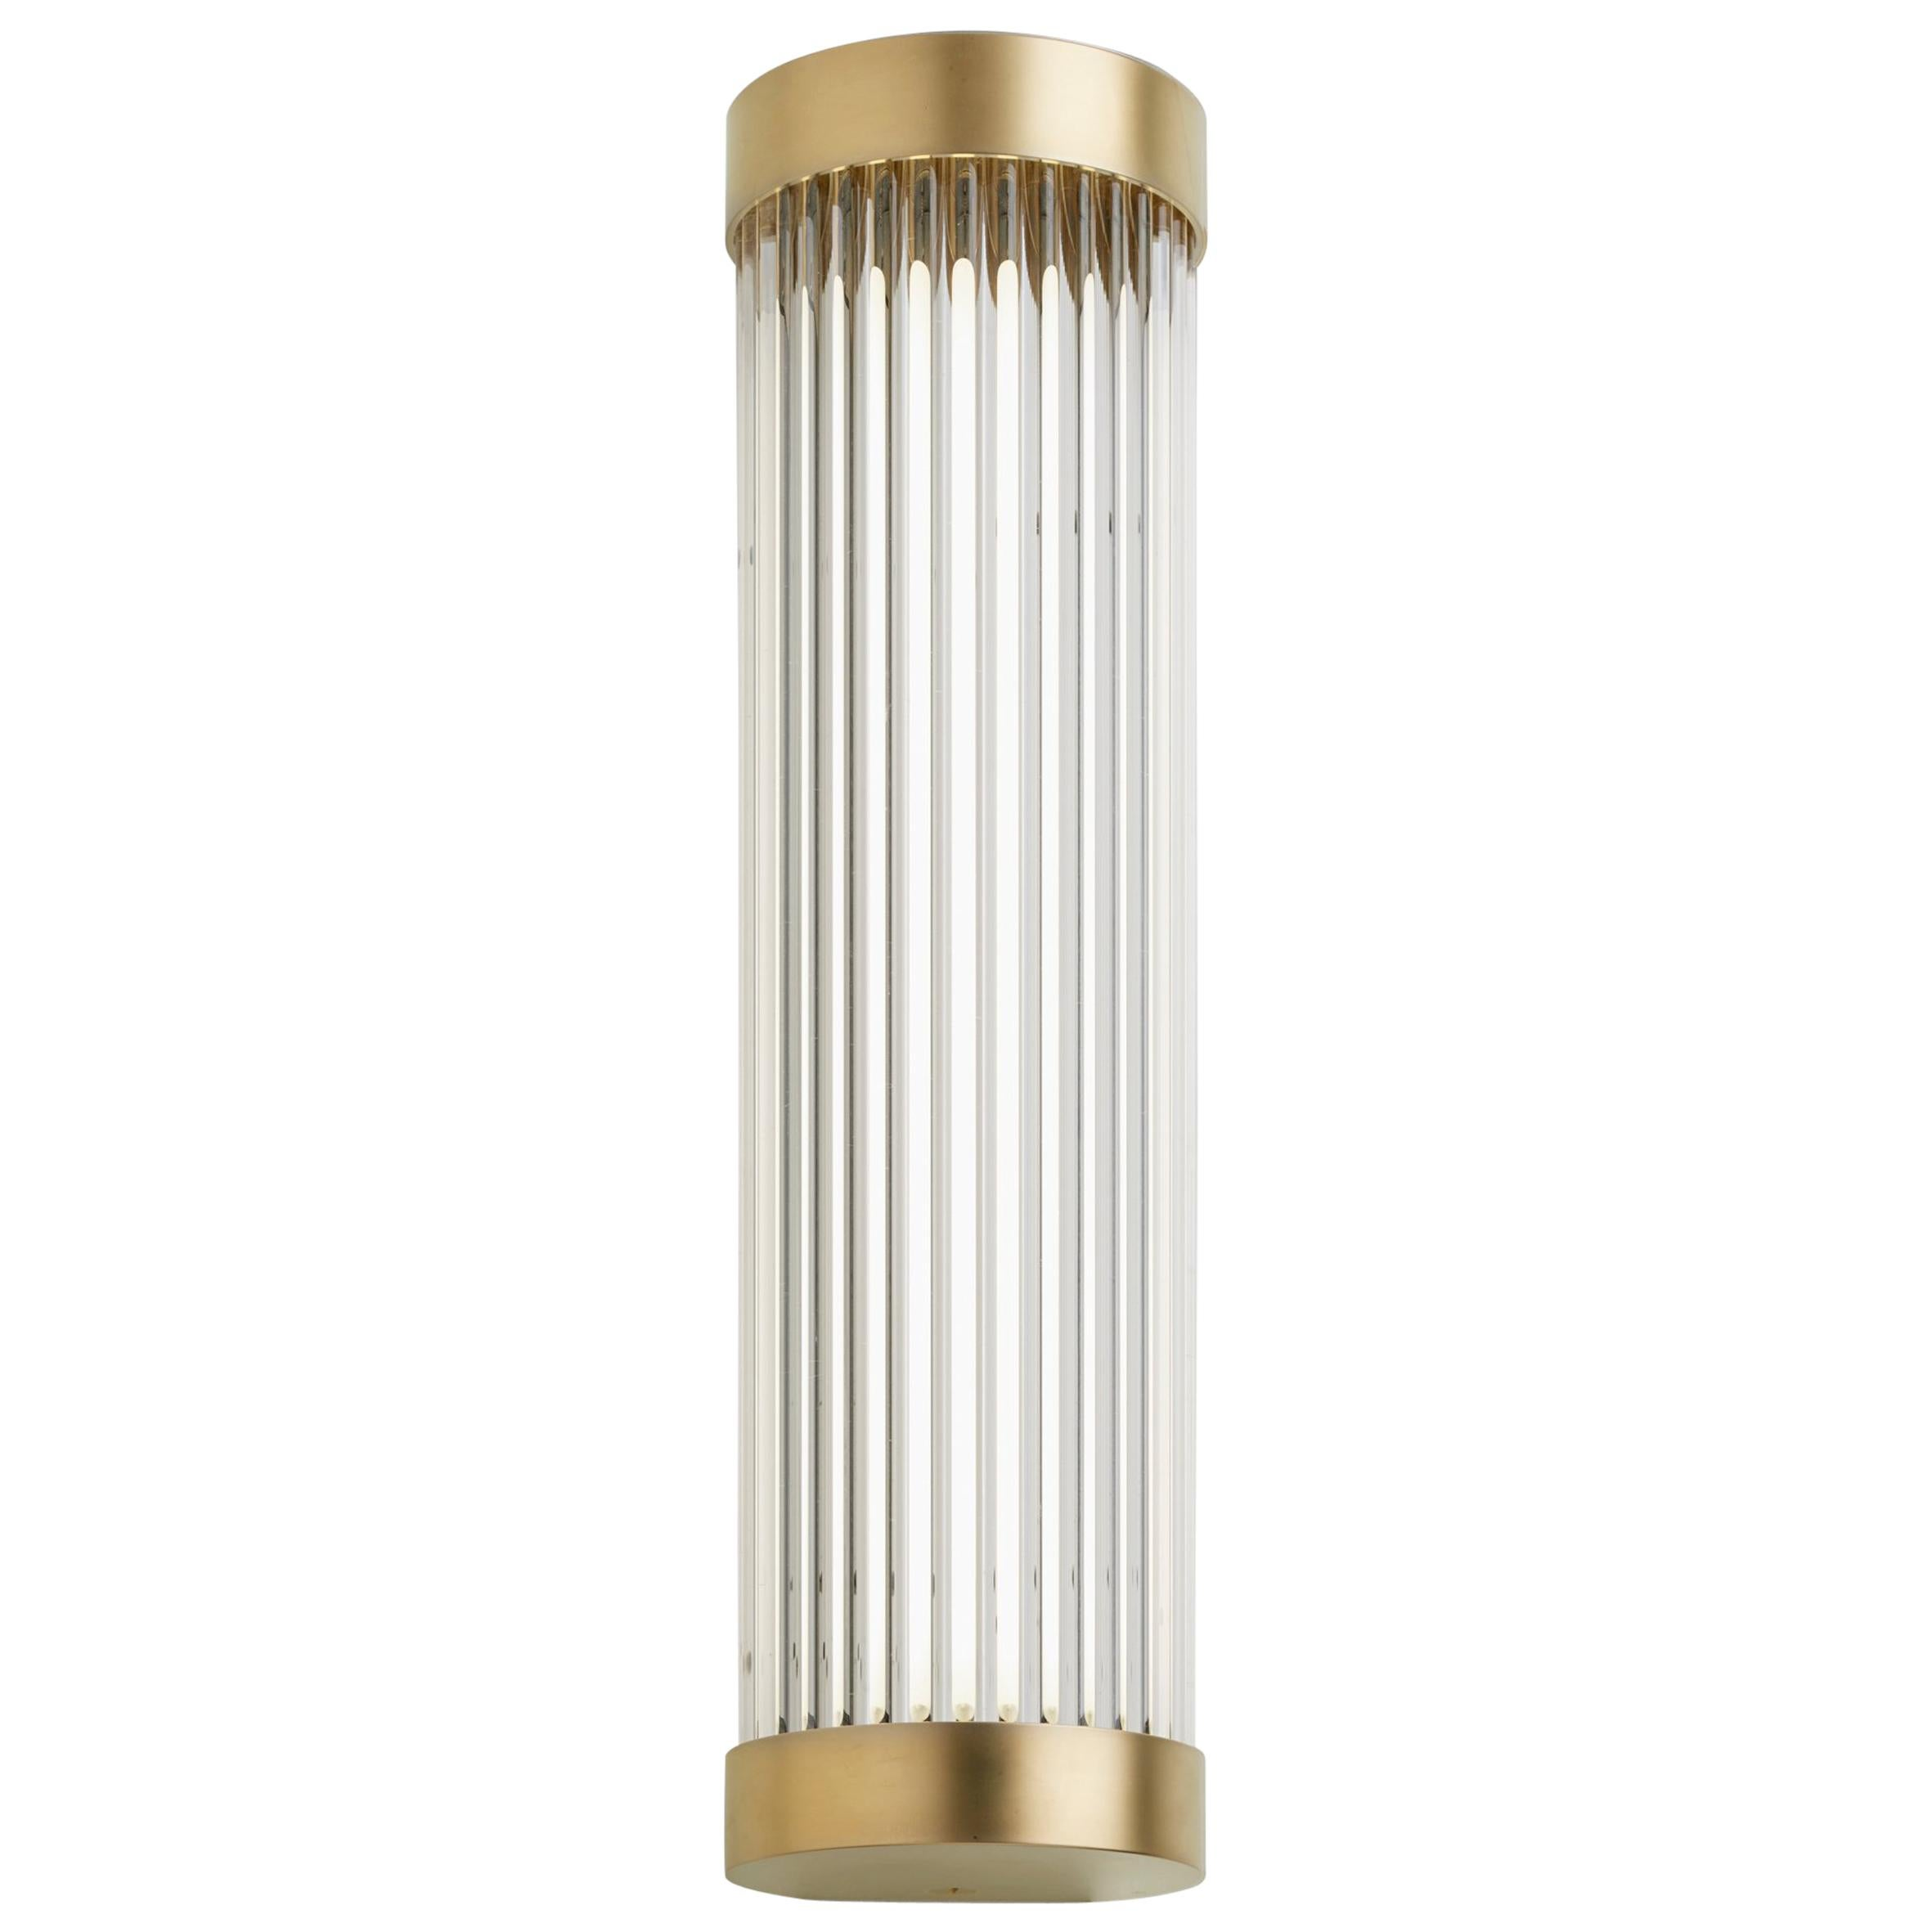 Tekna Mercer Wall Light with Gold Plated Brass Finish